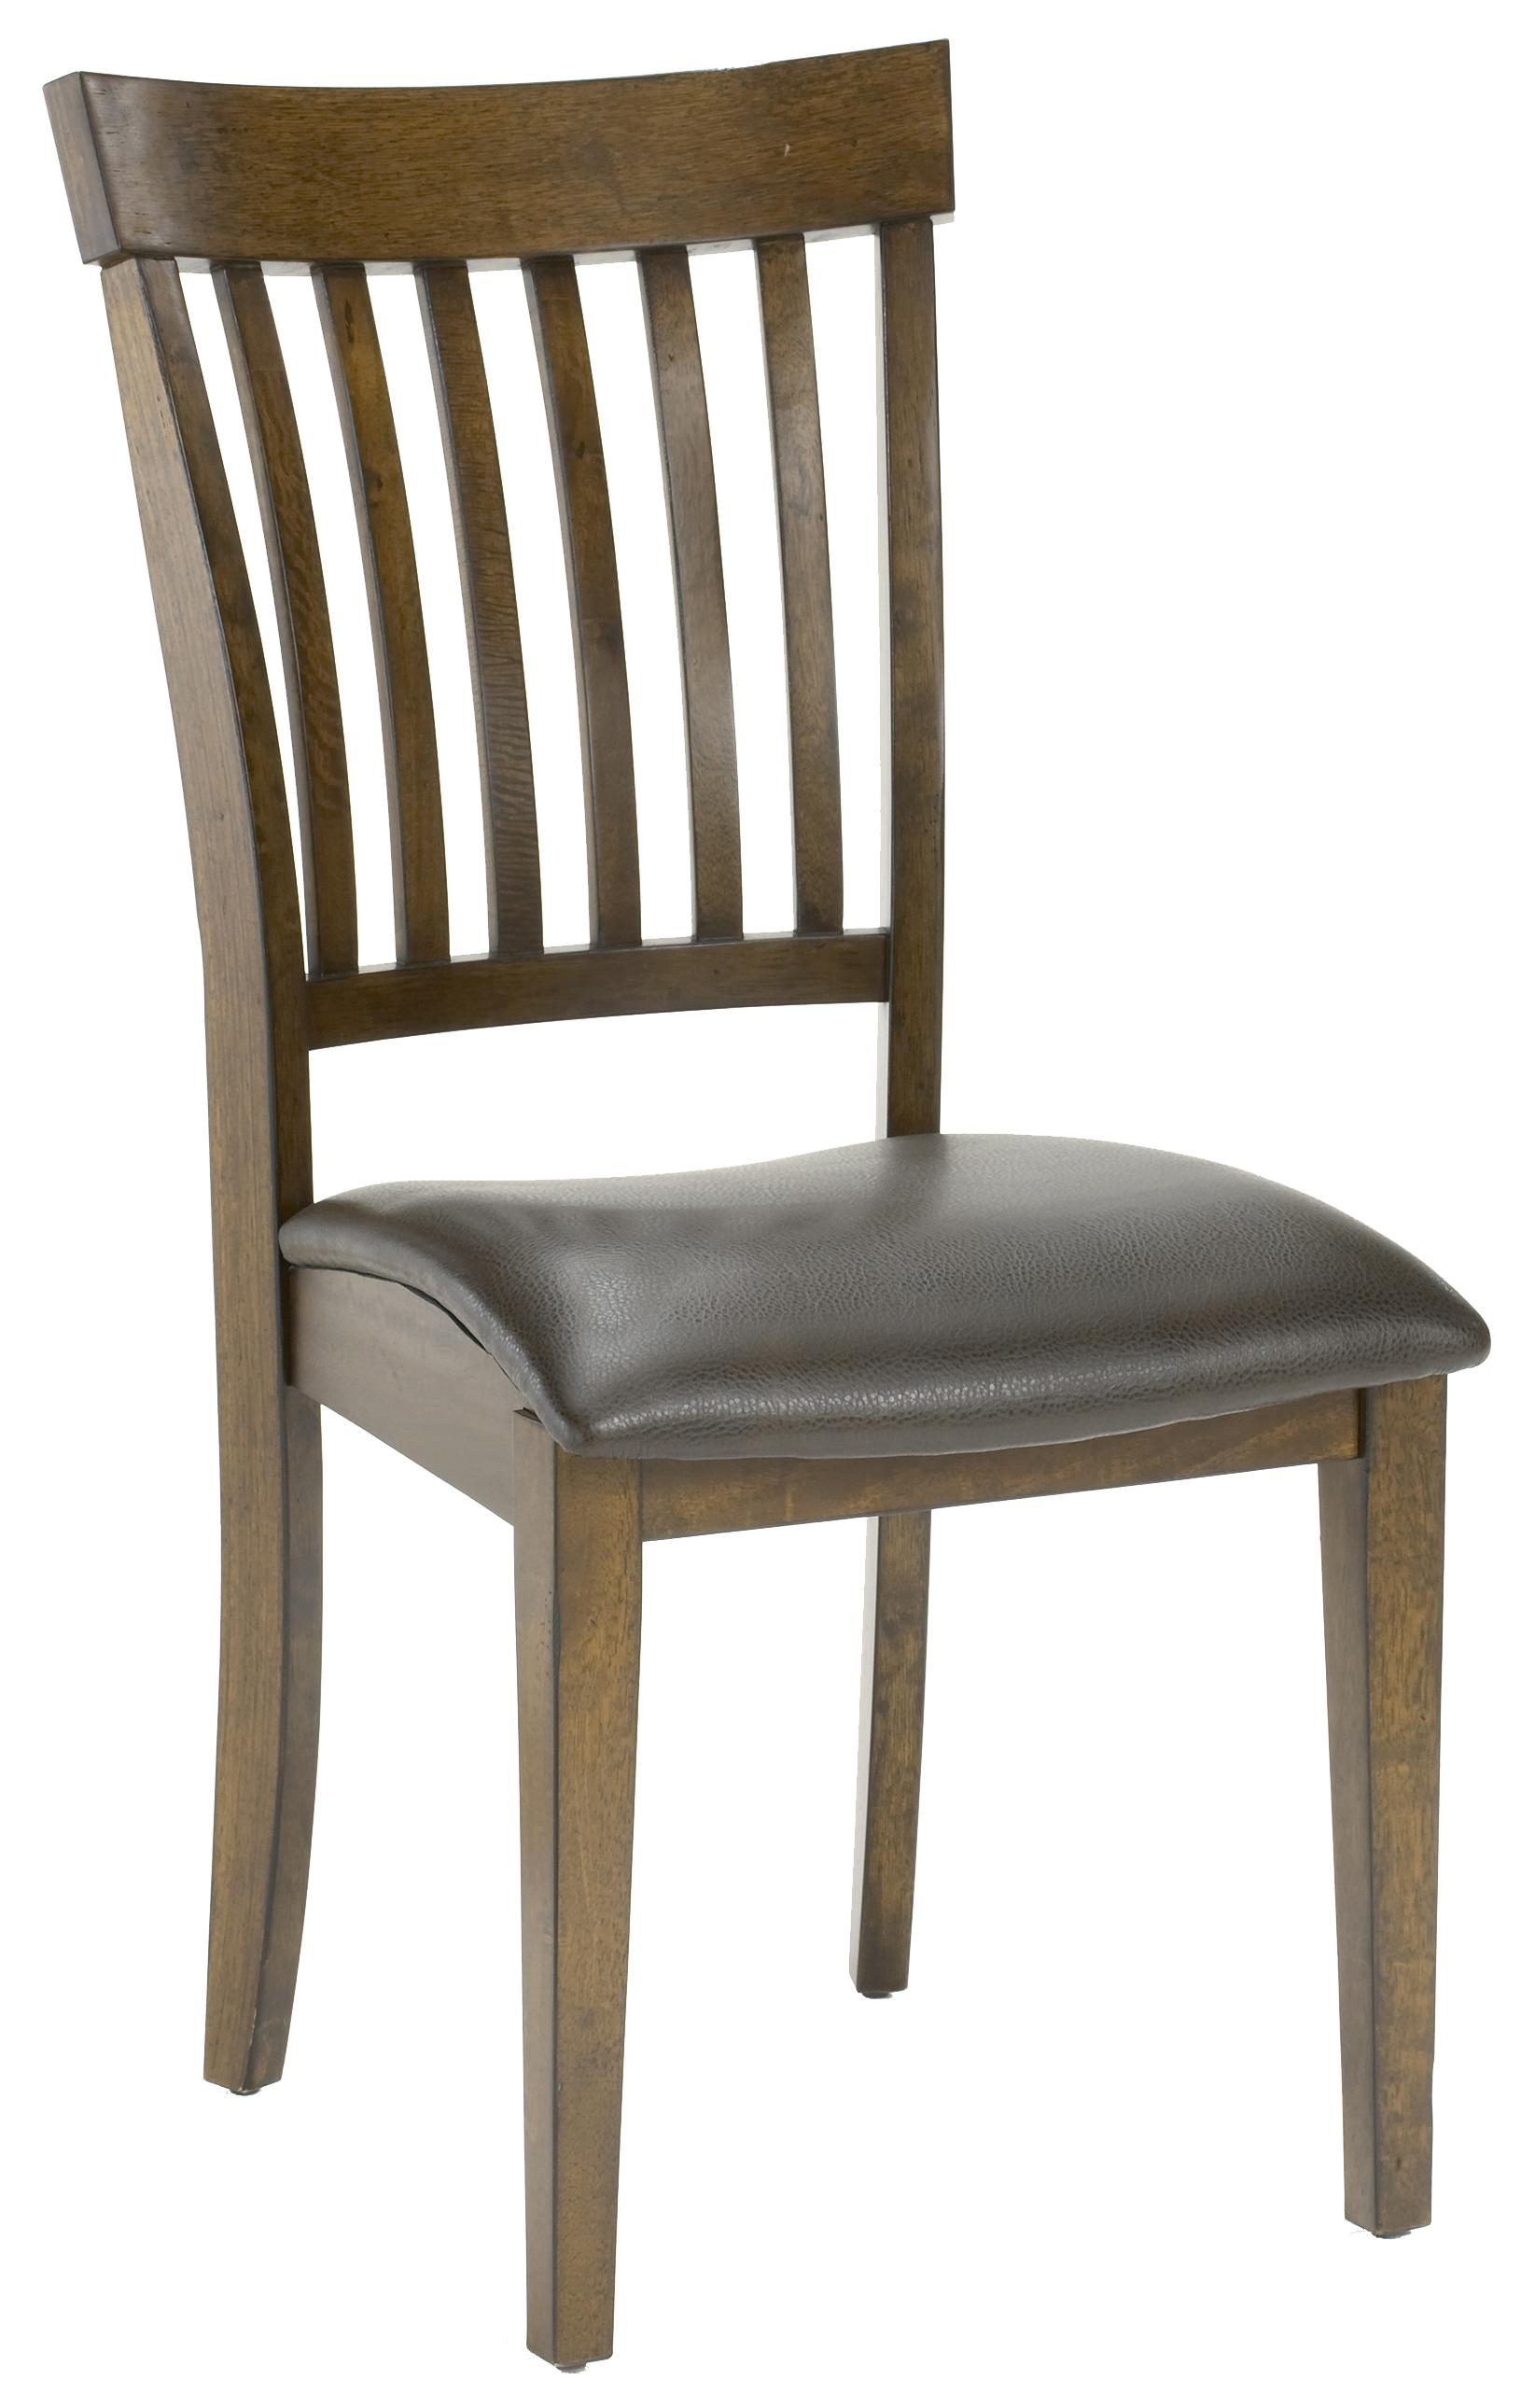 Hillsdale Arbor Hill Dining Side Chair - Item Number: 4232-802